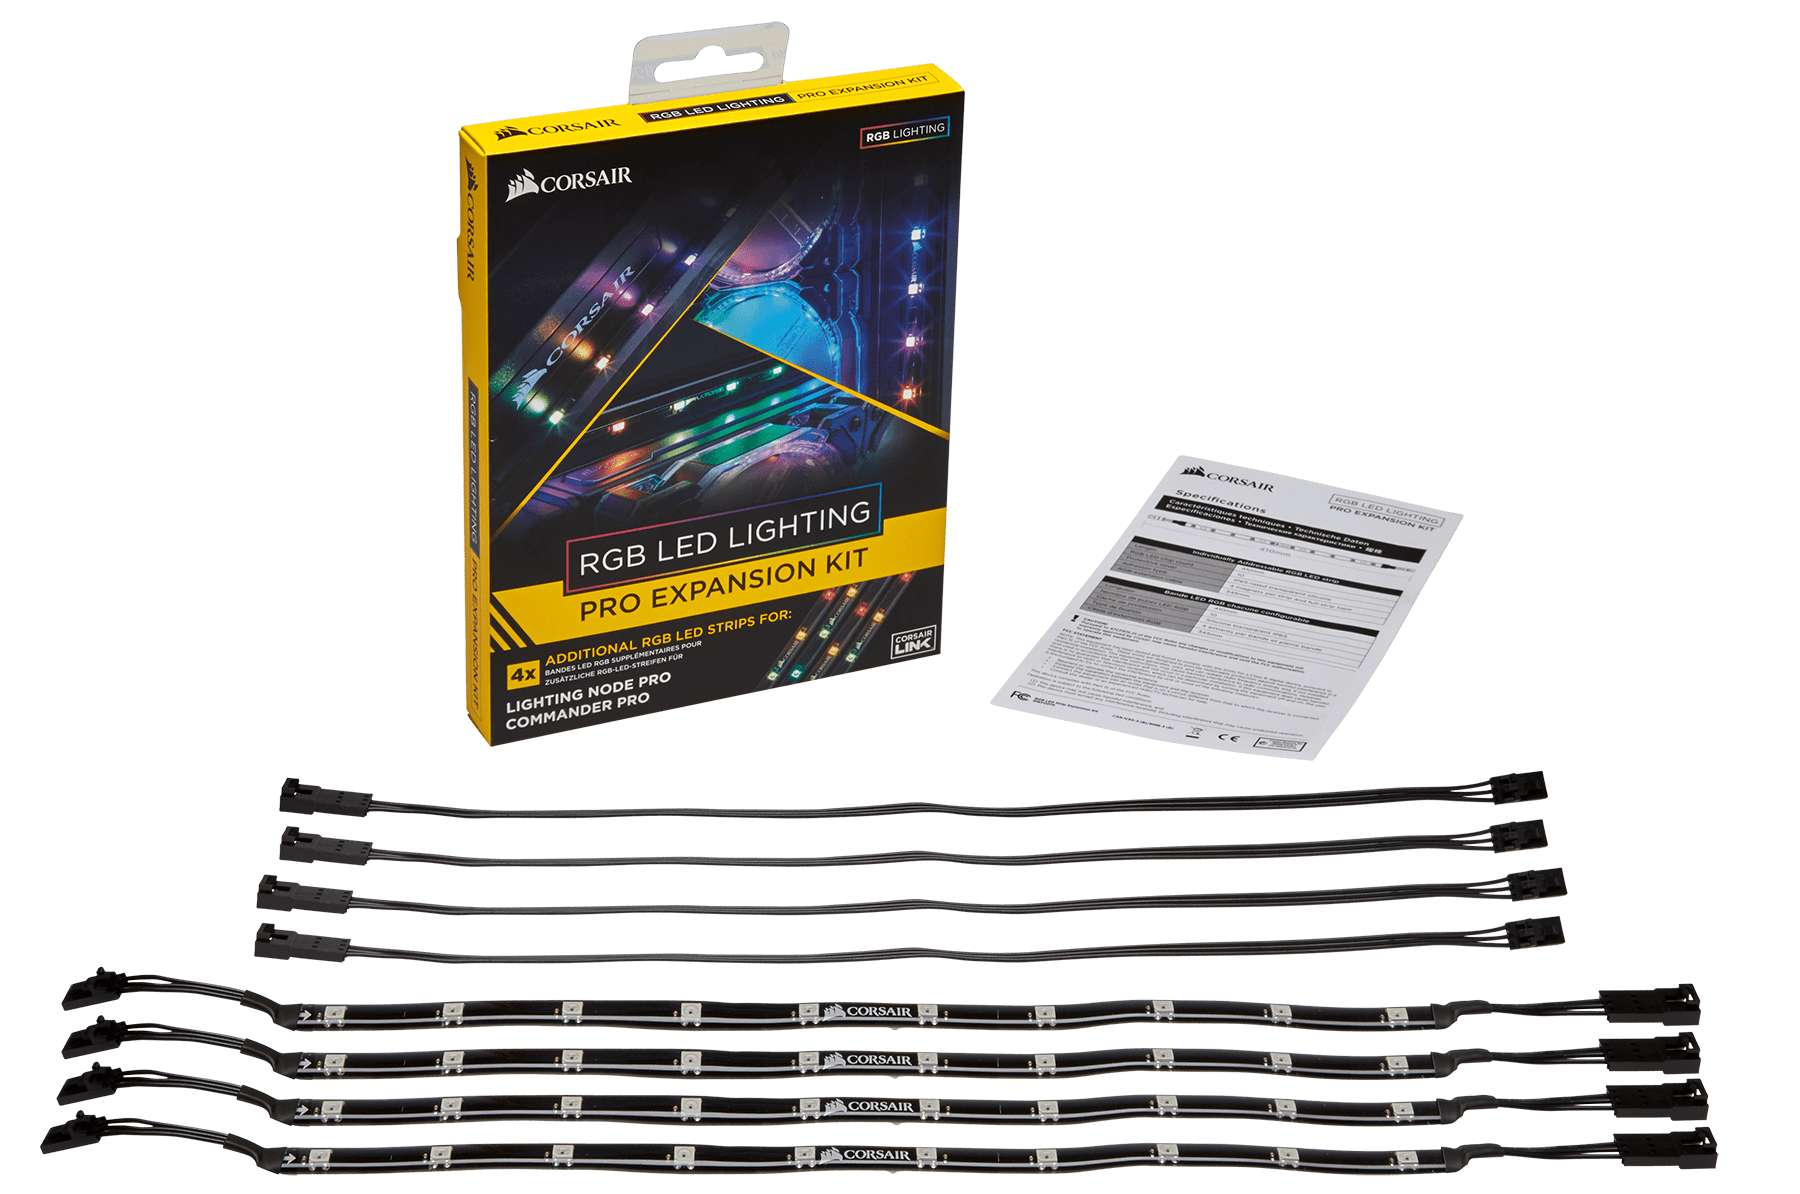 Corsair Rgb Corsair Rgb Led Lighting Pro Expansion Kit